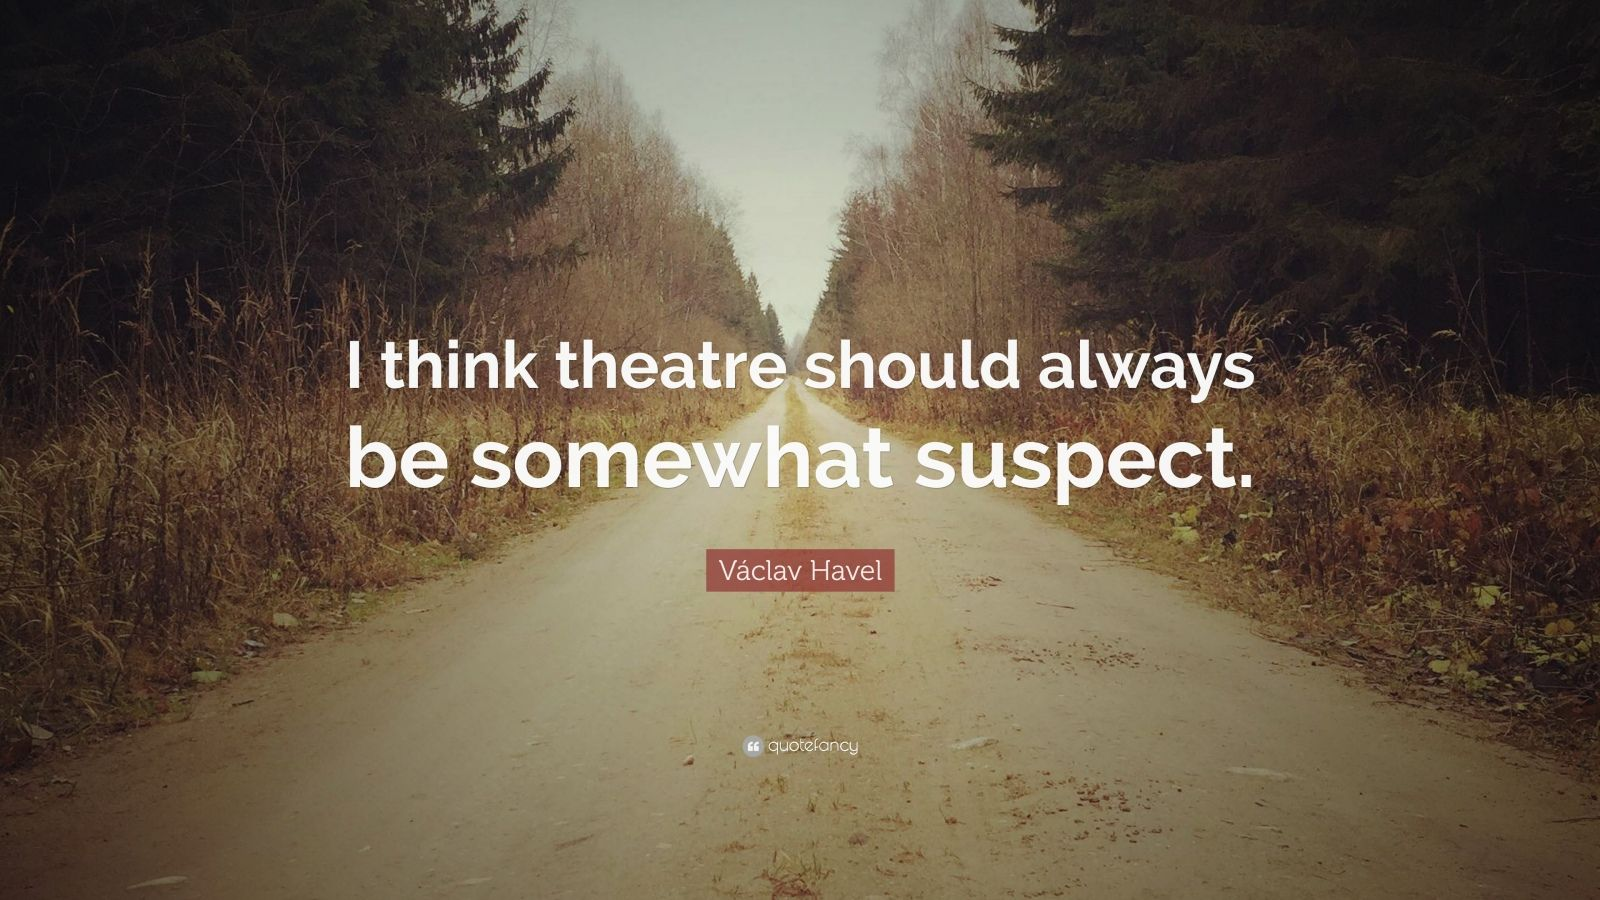 """Václav Havel Quote: """"I think theatre should always be somewhat suspect."""""""